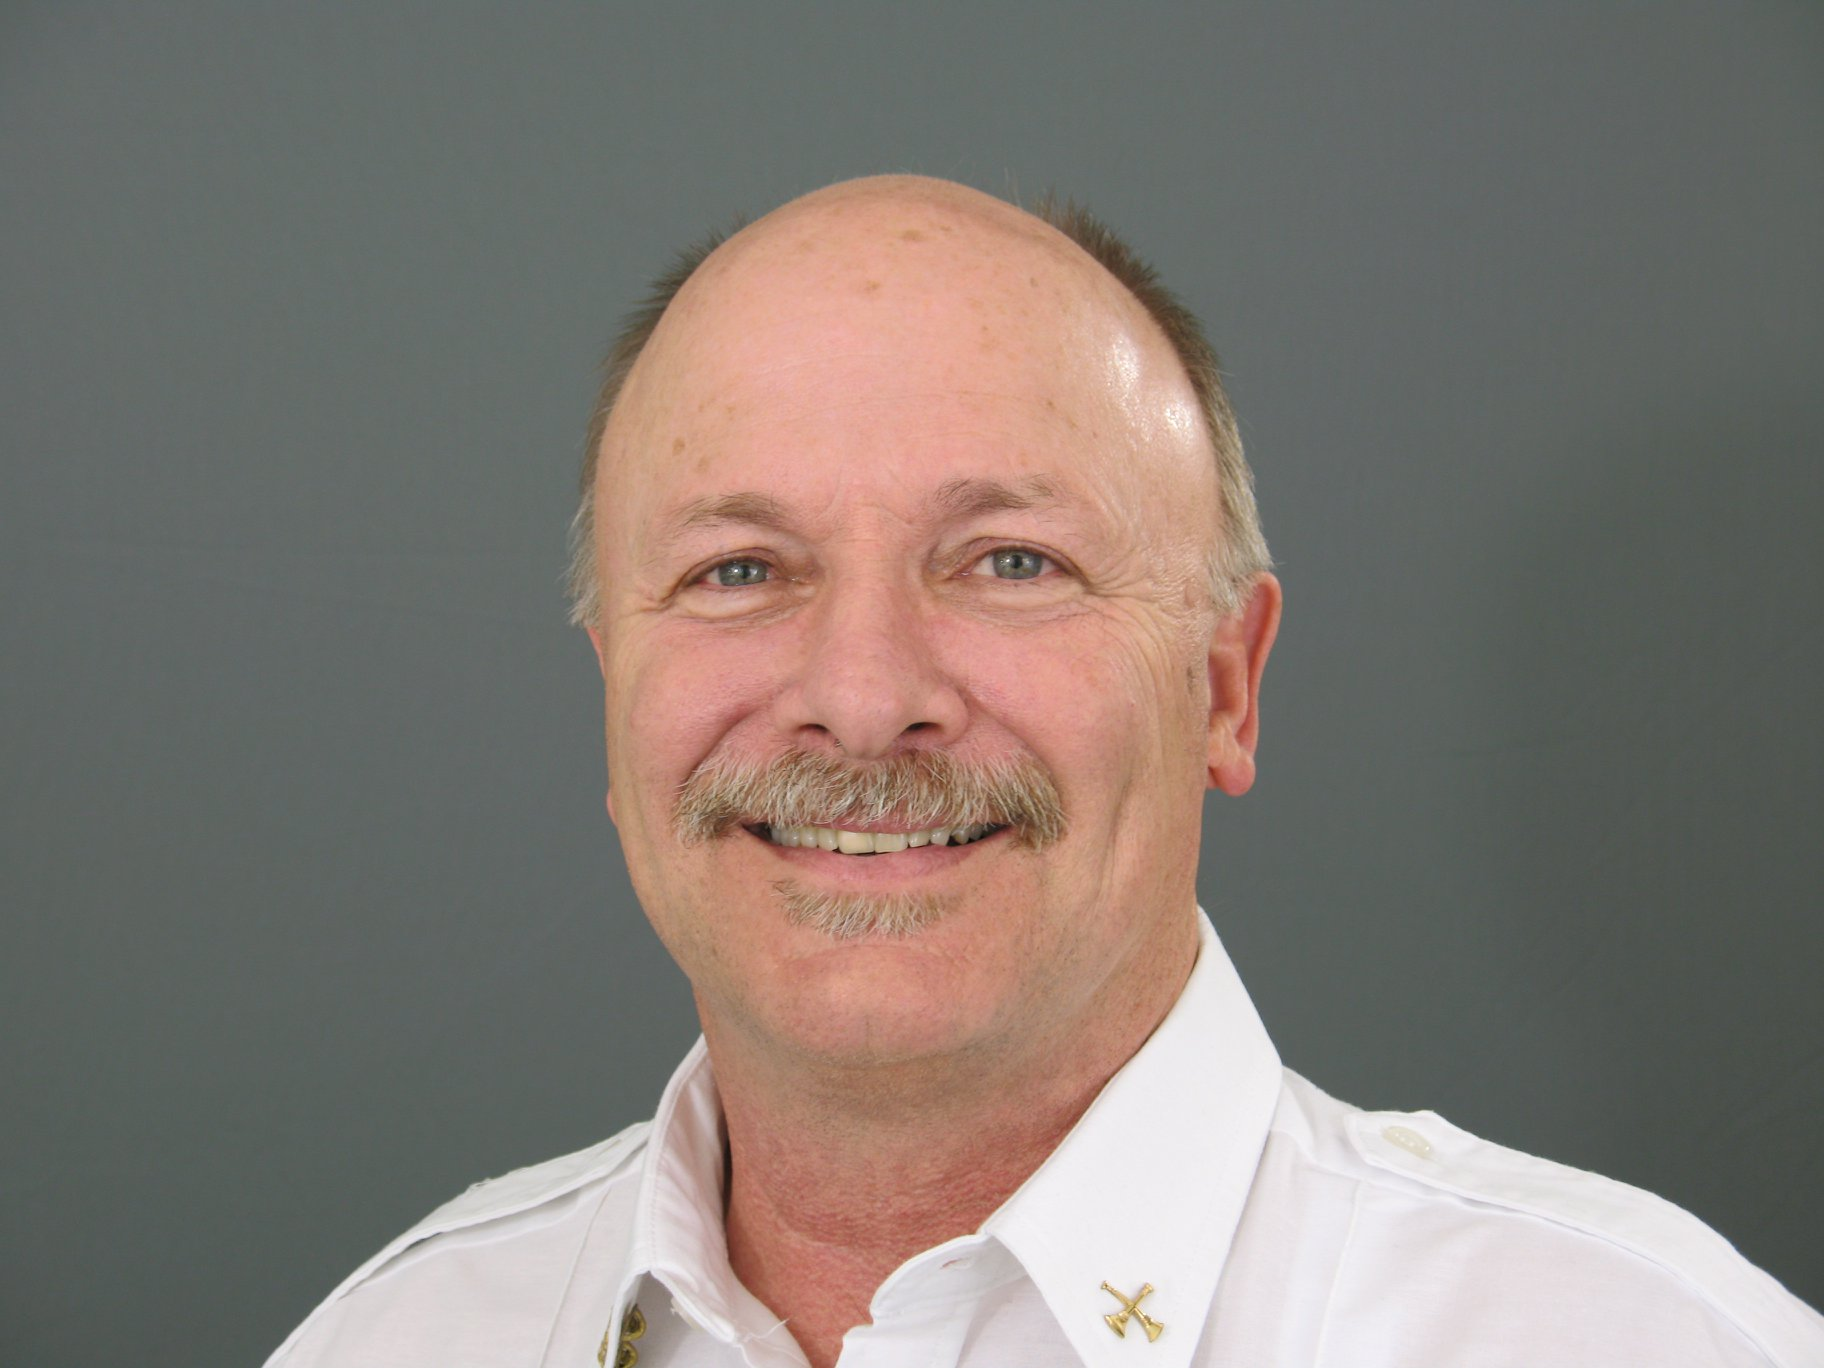 VRFA Battalion Chief Rudy Peden retires after 41 years